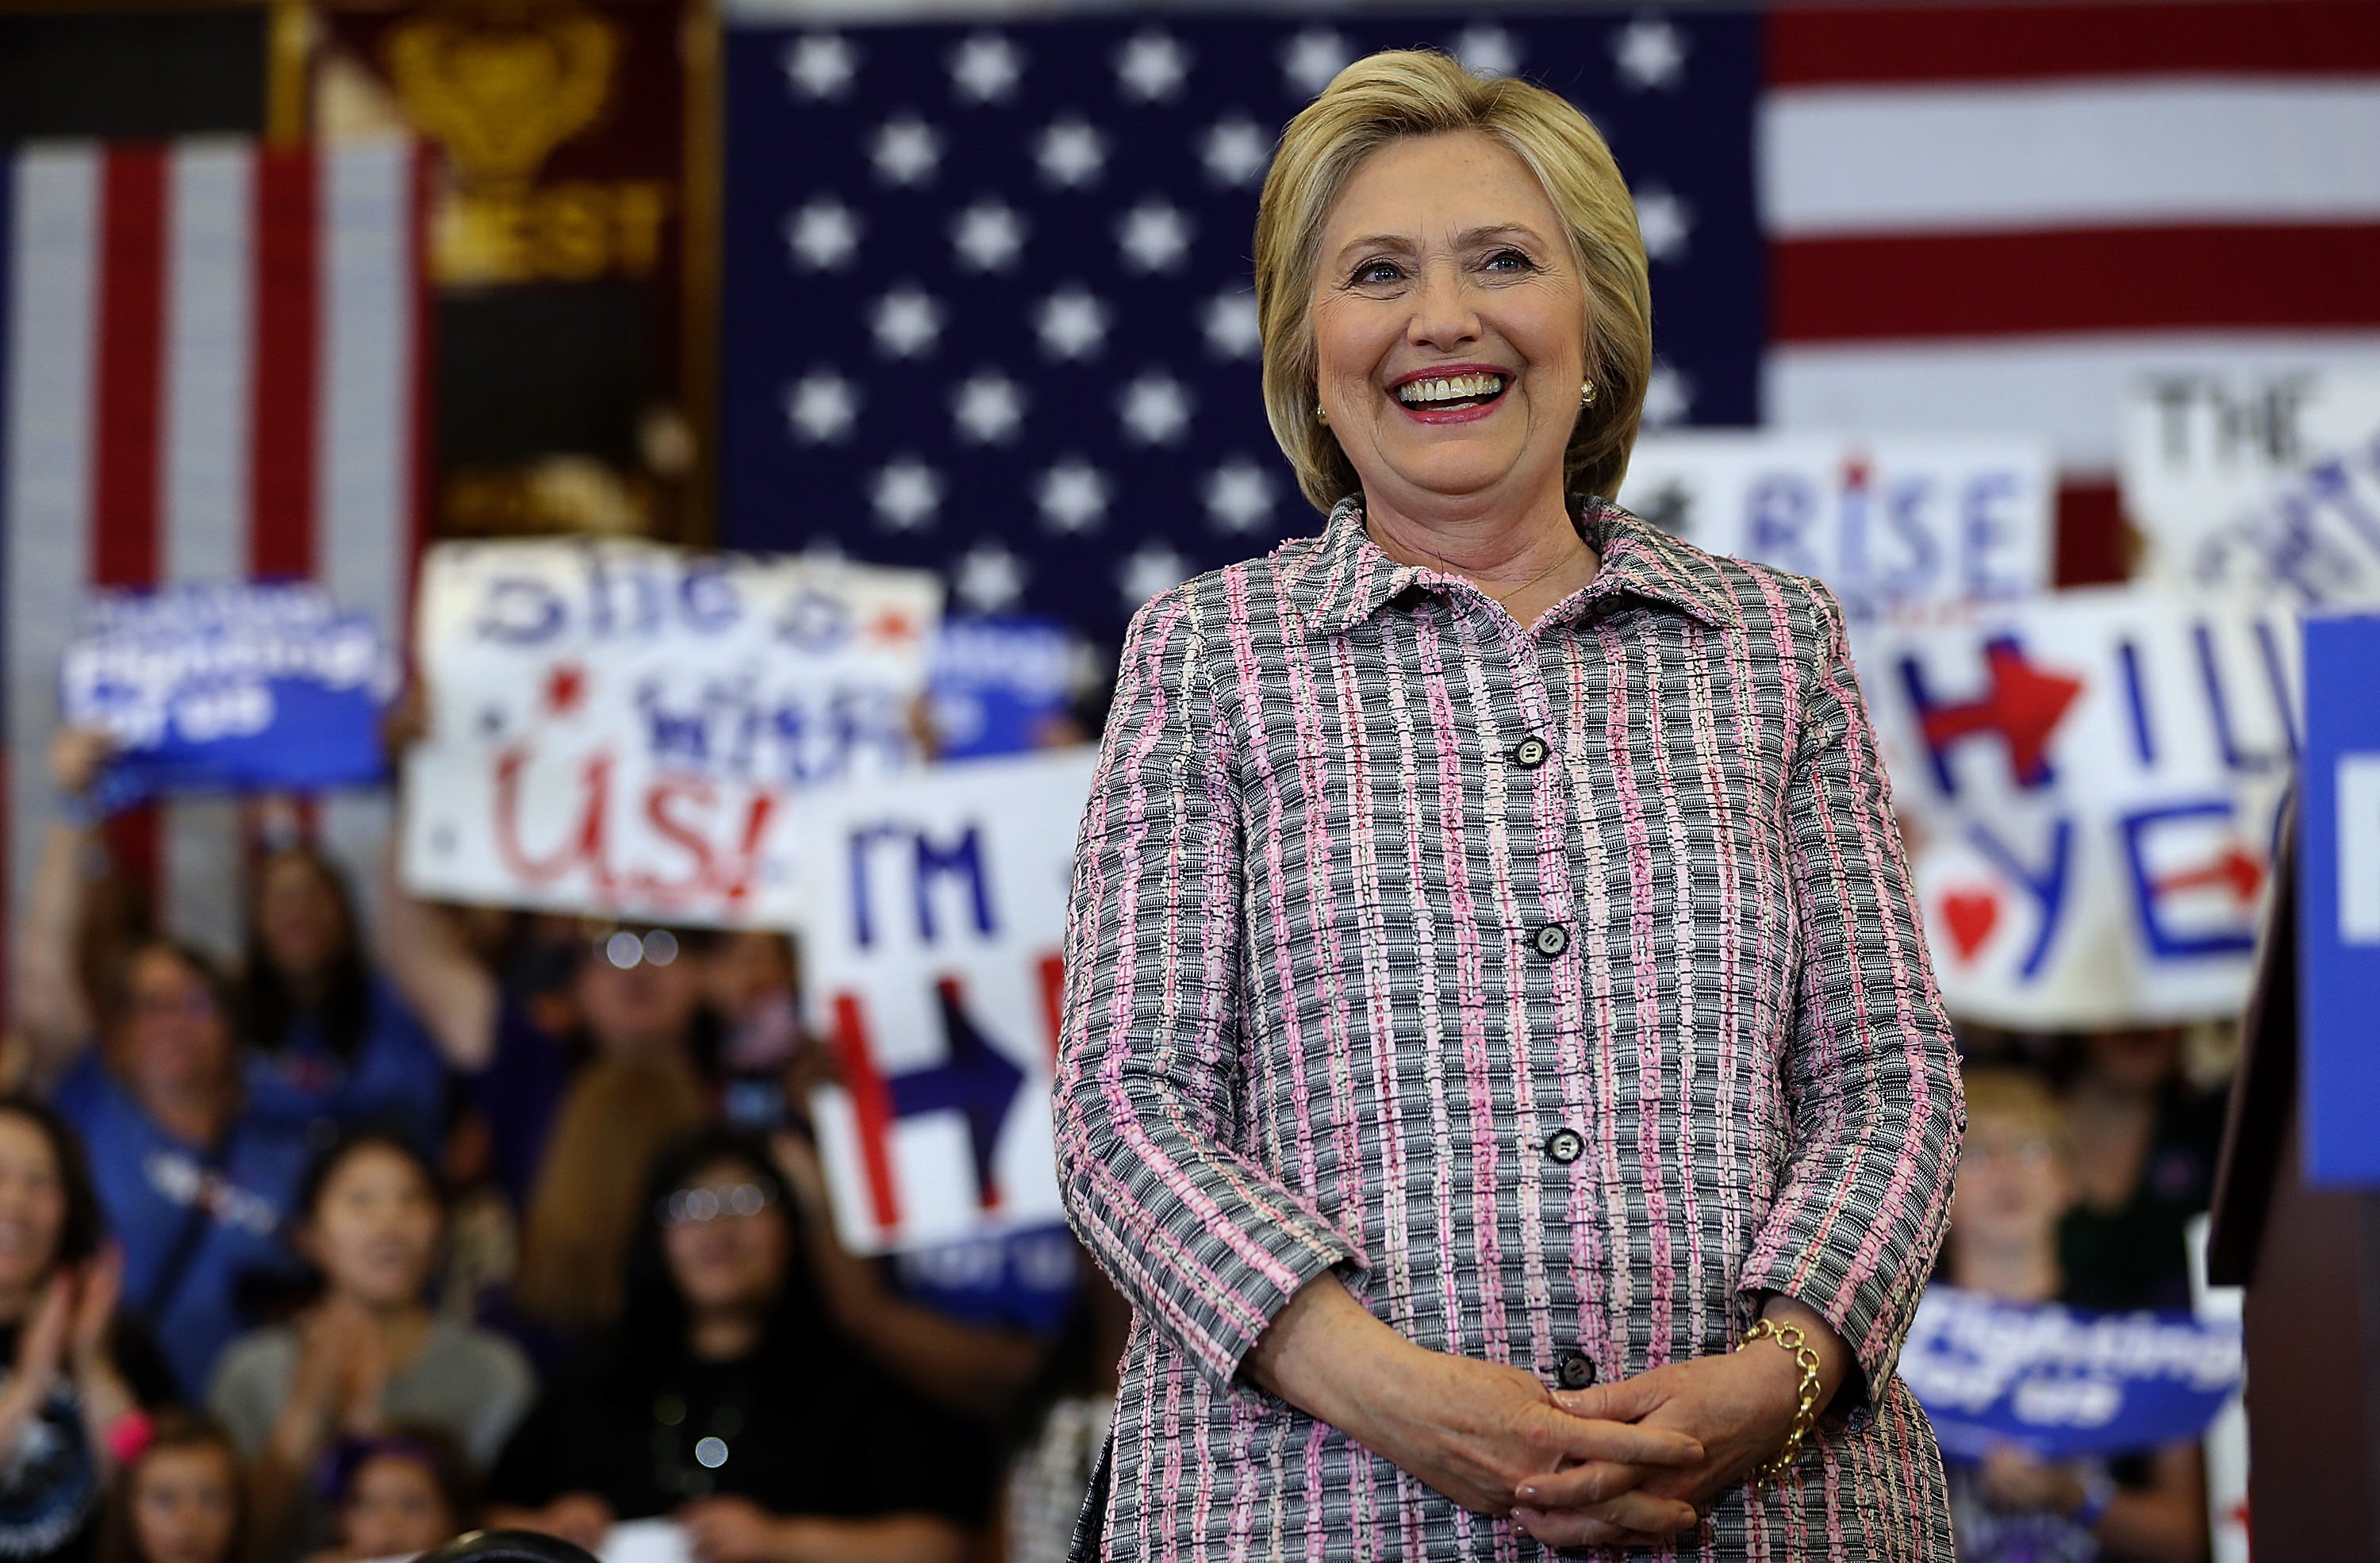 Democratic presidential candidate former Secretary of State Hillary Clinton looks on during a campaign rally at Sacramento City College on June 5, 2016 in Sacramento, California. The California primary is June 7.